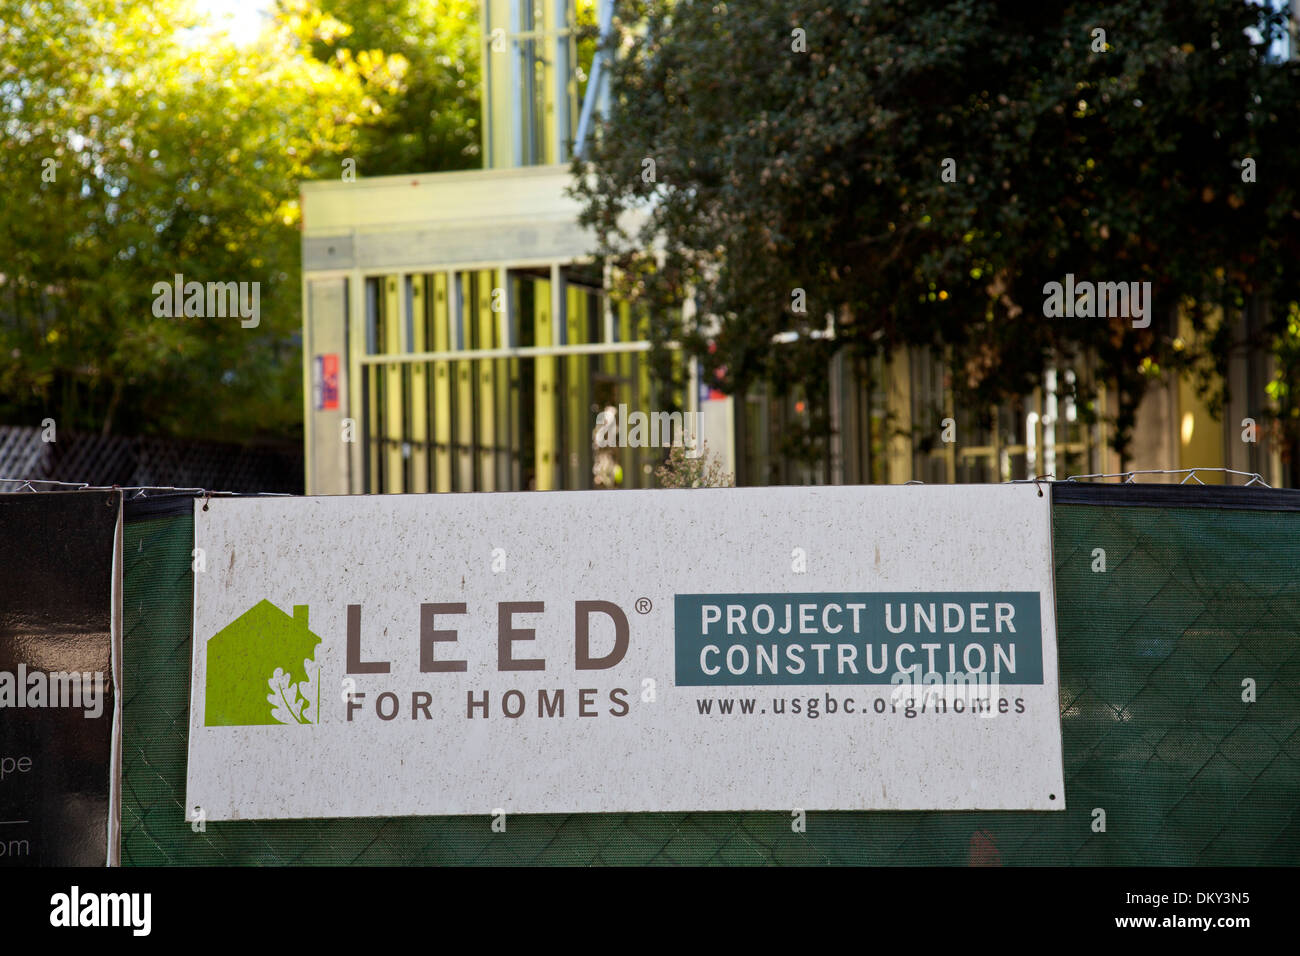 LEEd home construction sign in Los Angeles. Stock Photo